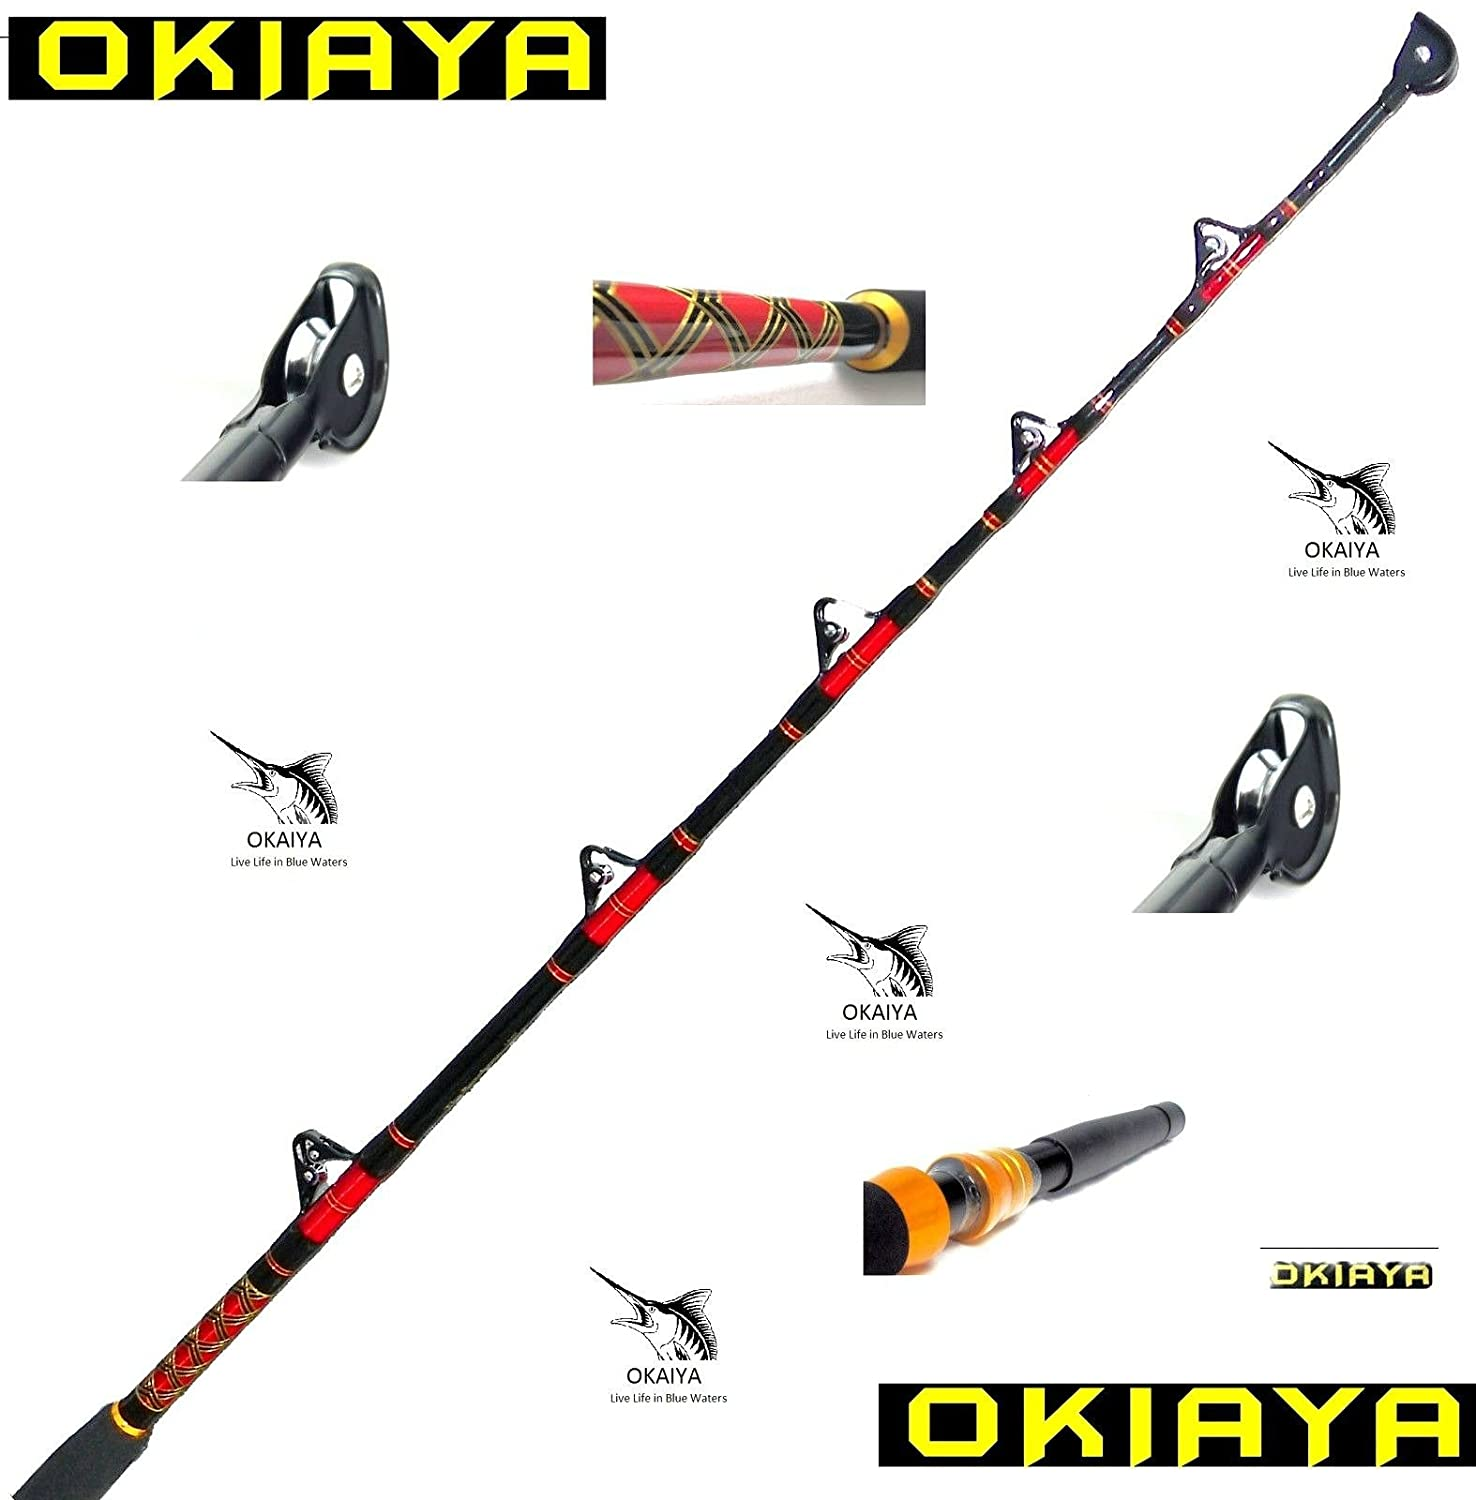 Okiaya composit 80 130lb saltwater big game roller rod ebay for Big game fishing rods